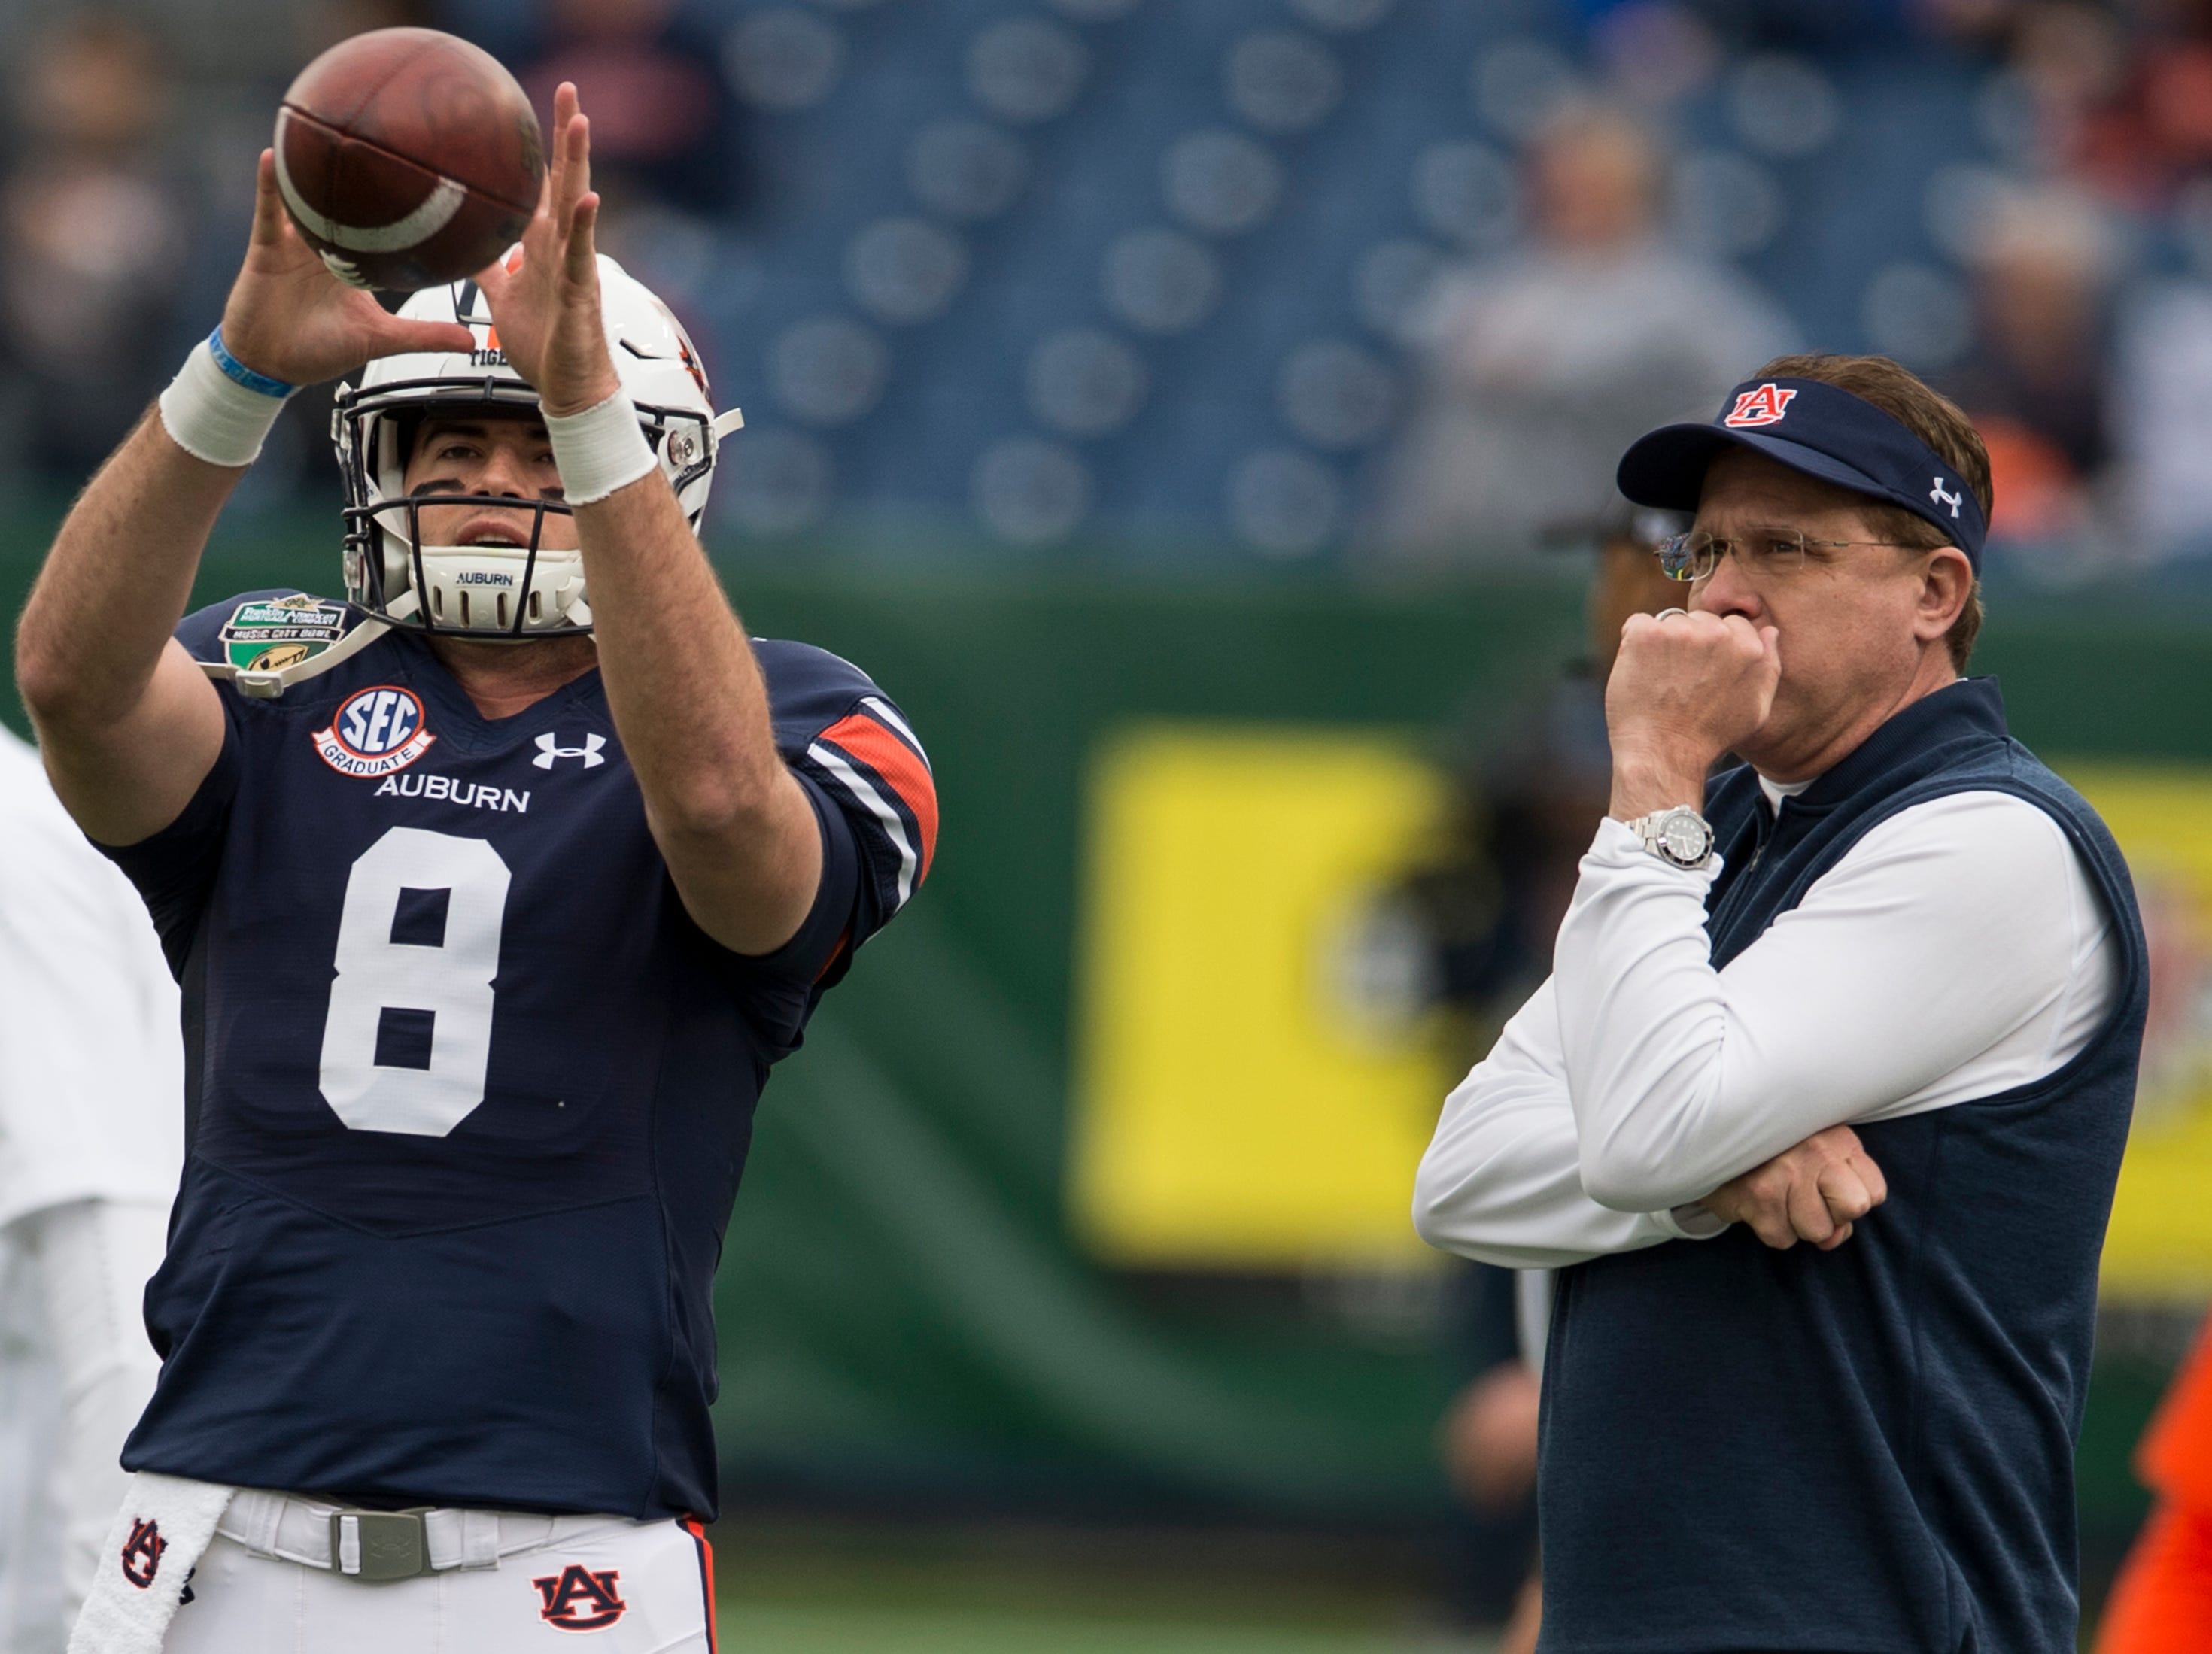 Auburn head coach Gus Malzahn watches on has quarterback Jarrett Stidham (8) warms up before the Music City Bowl at Nissan Stadium in Nashville, Tenn., on Friday, Dec. 28, 2018.